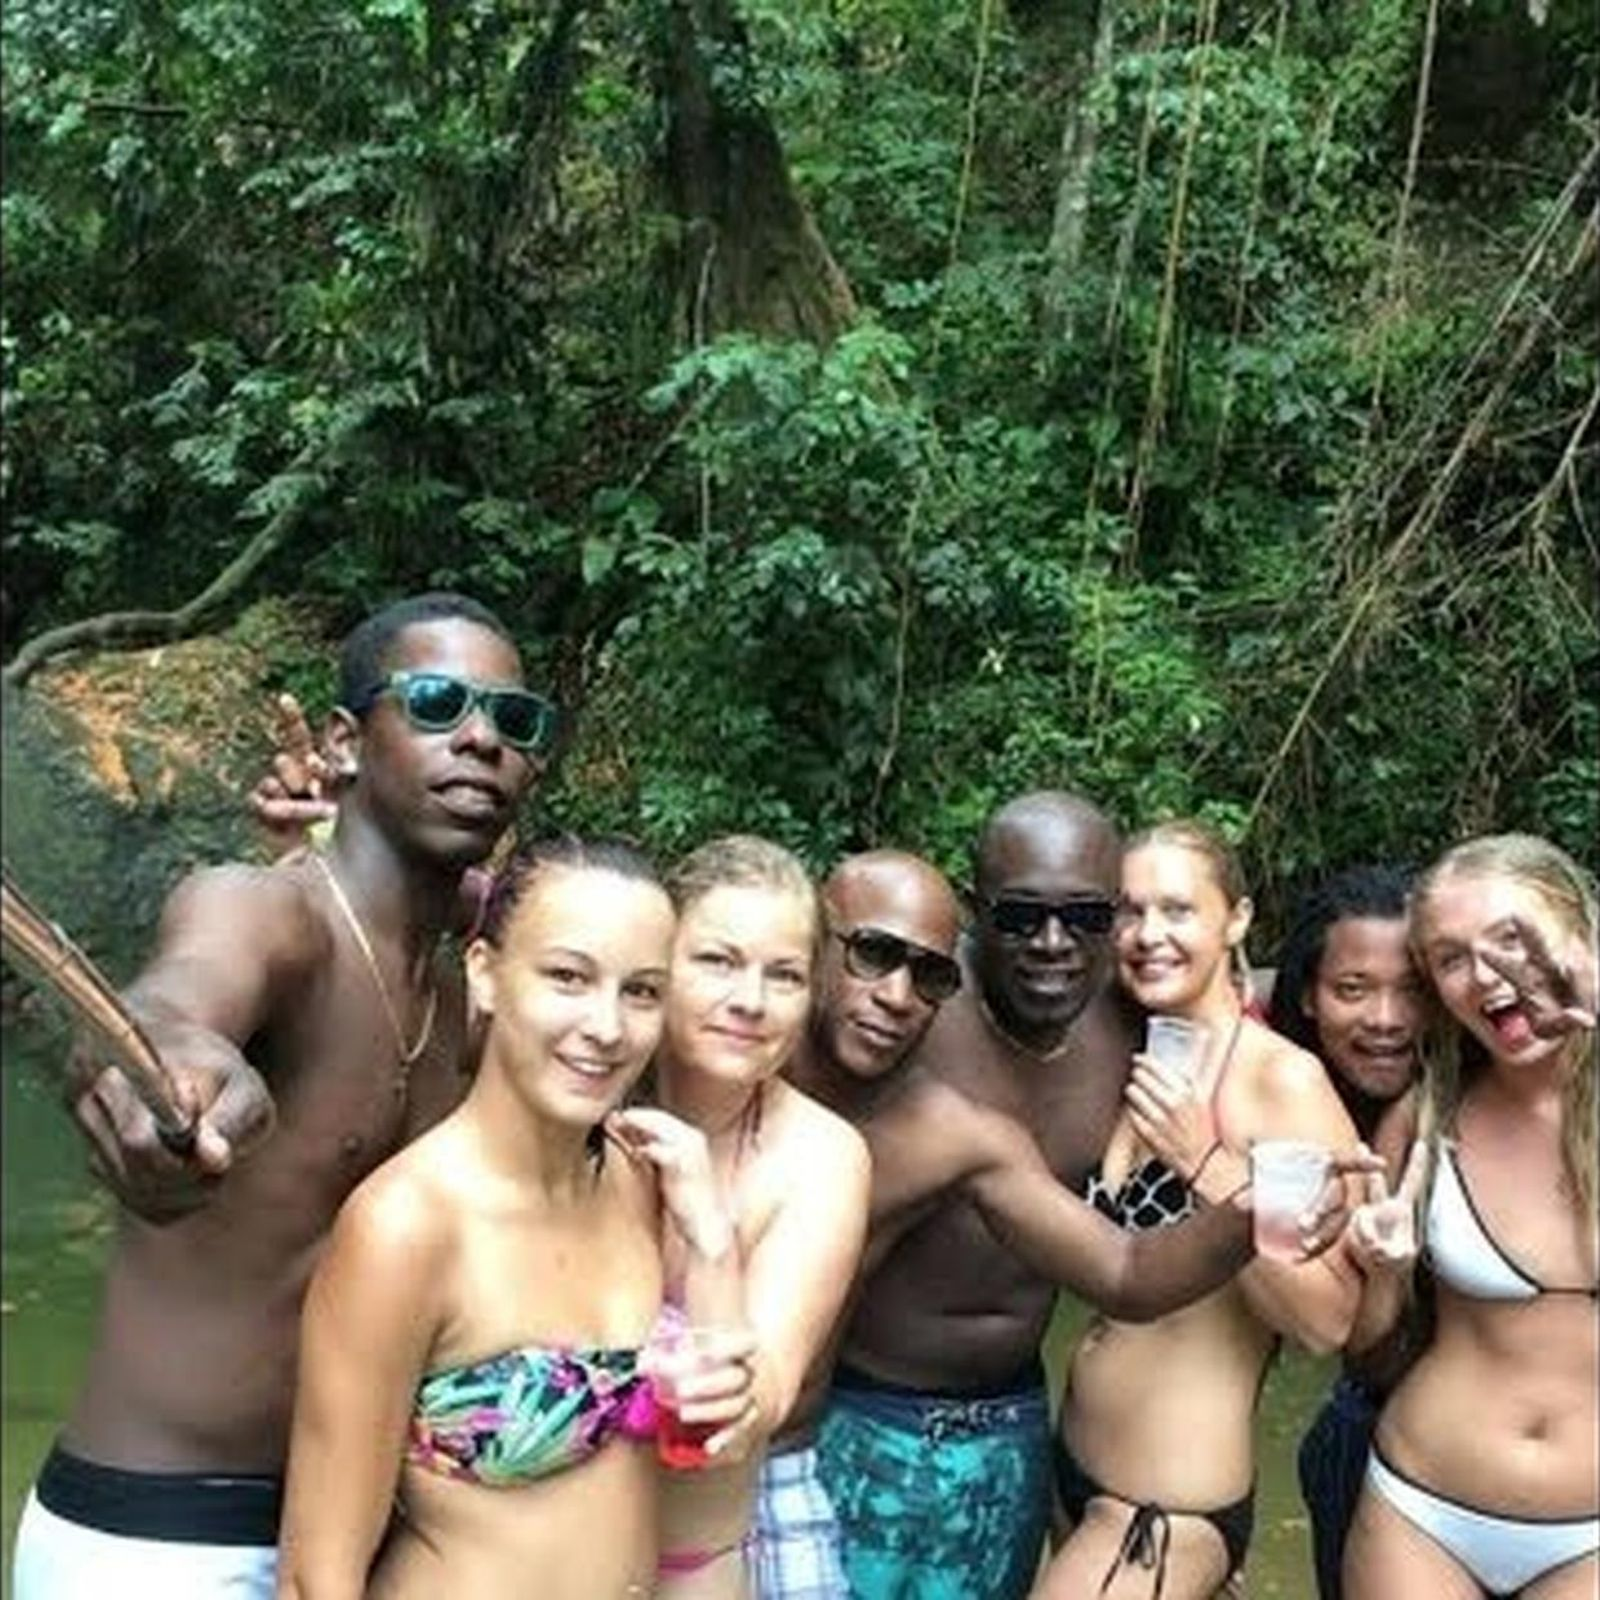 Interracial in jungle